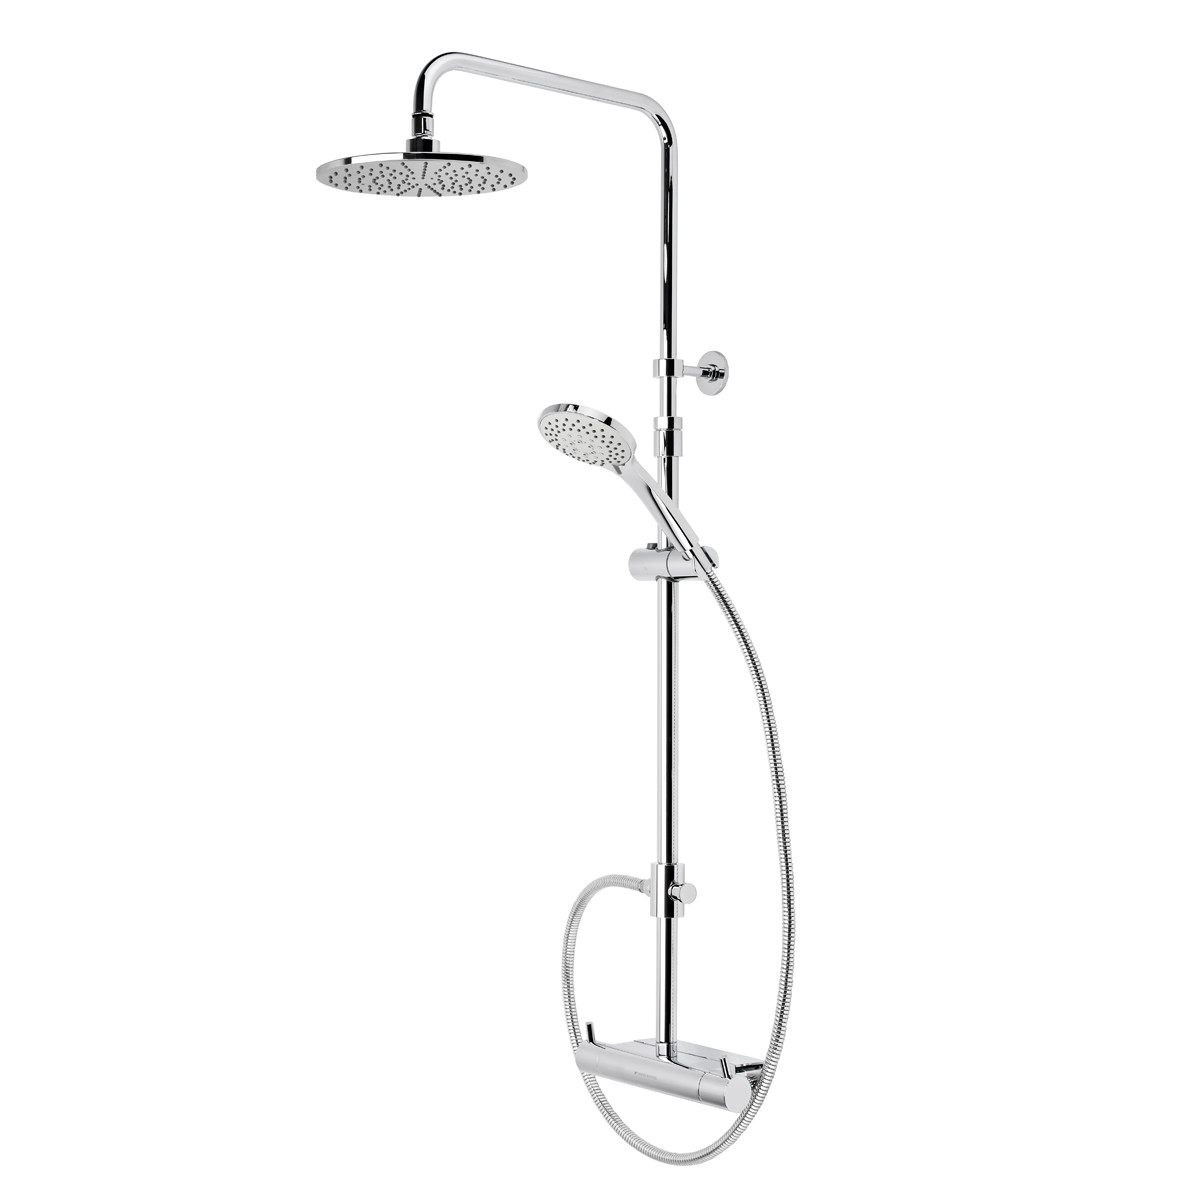 Roper Rhodes Storm Dual Function Exposed Shower System with ...